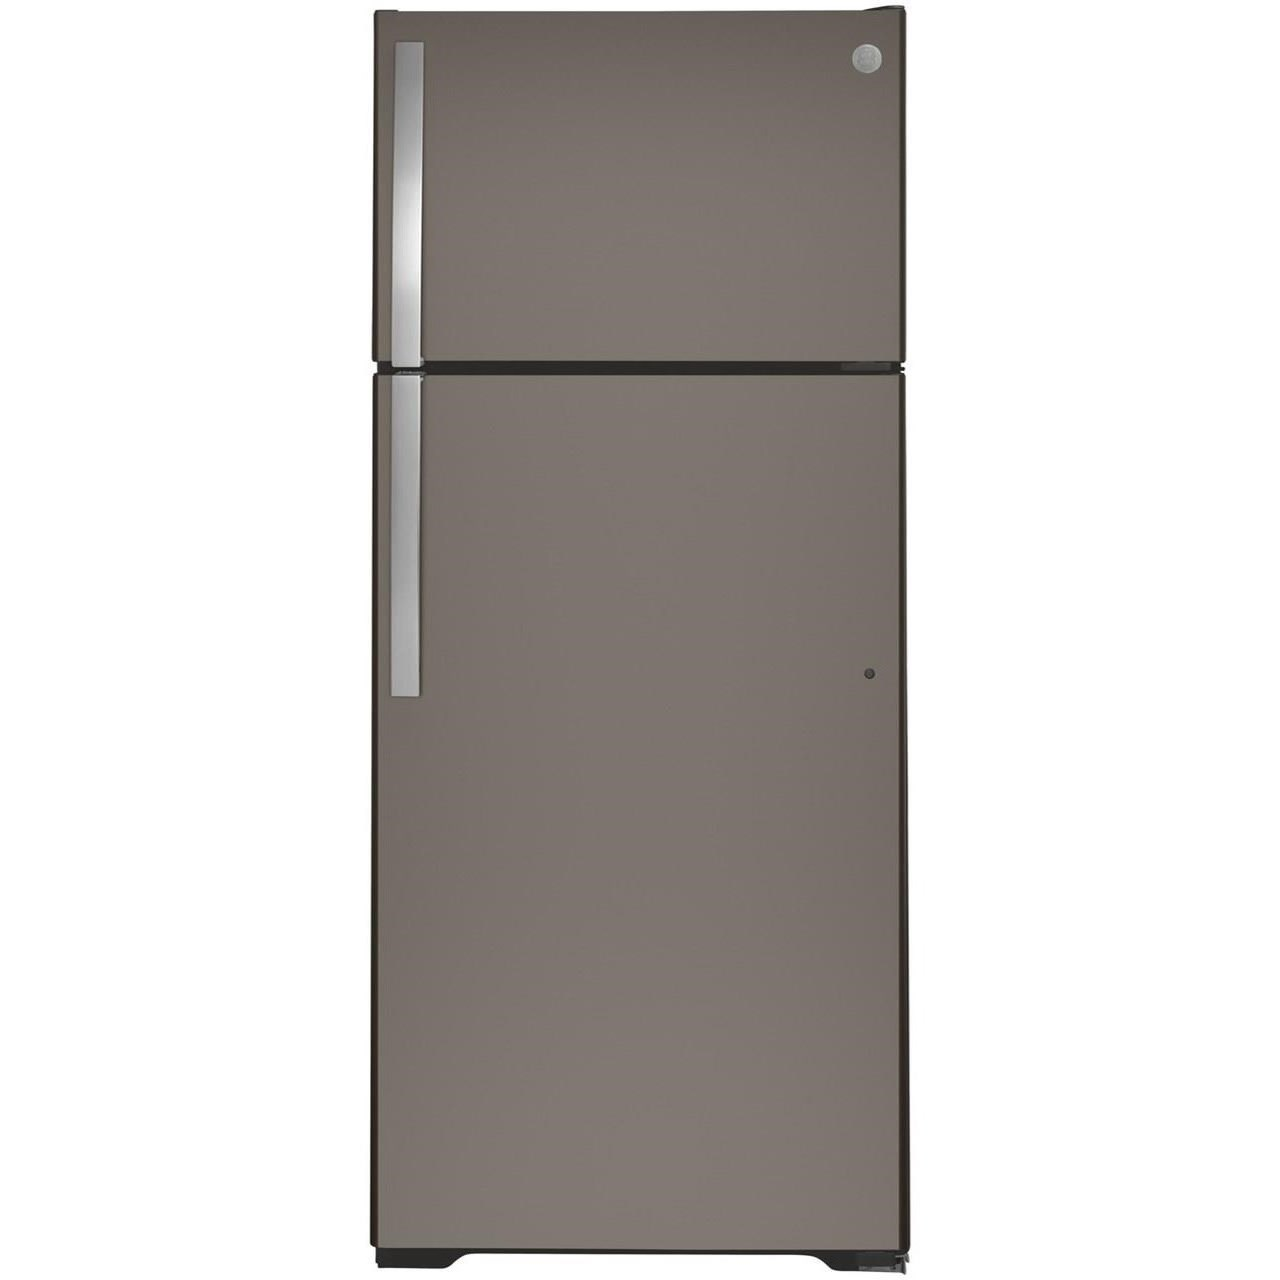 GE Top-Freezer Refrigerators GE® 17.5 Cu. Ft. Top-Freezer Refrigerator by GE Appliances at Westrich Furniture & Appliances